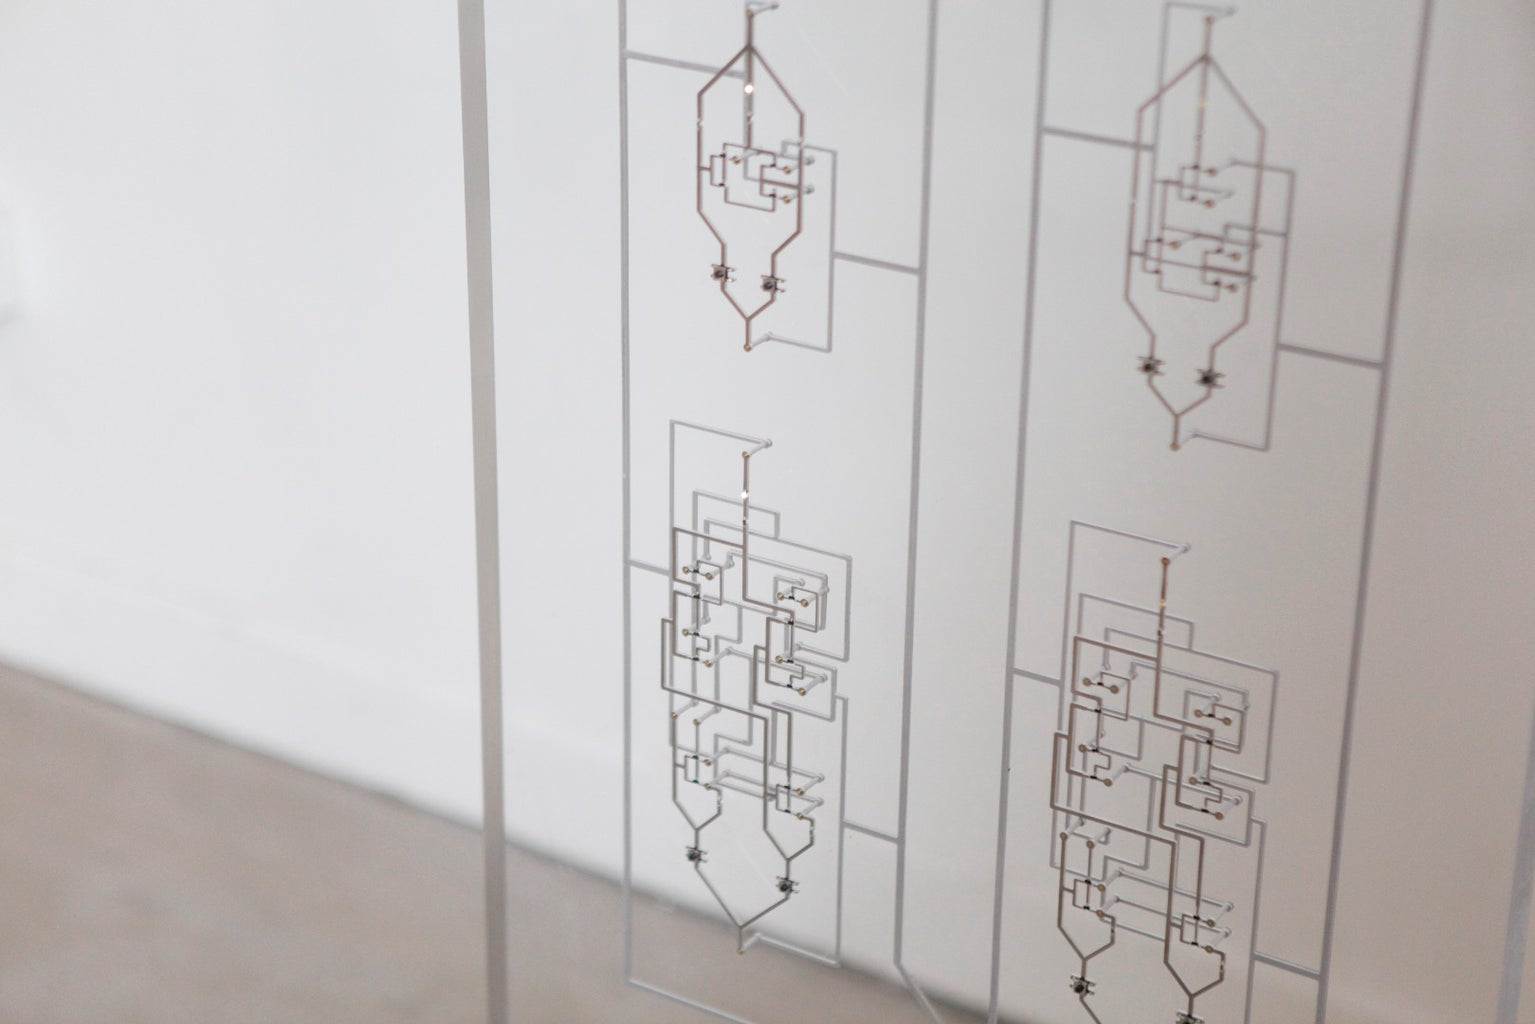 Inlaid Logic : a Giant Circuit Board Inlay Made Out of Waterjet Electronic Traces